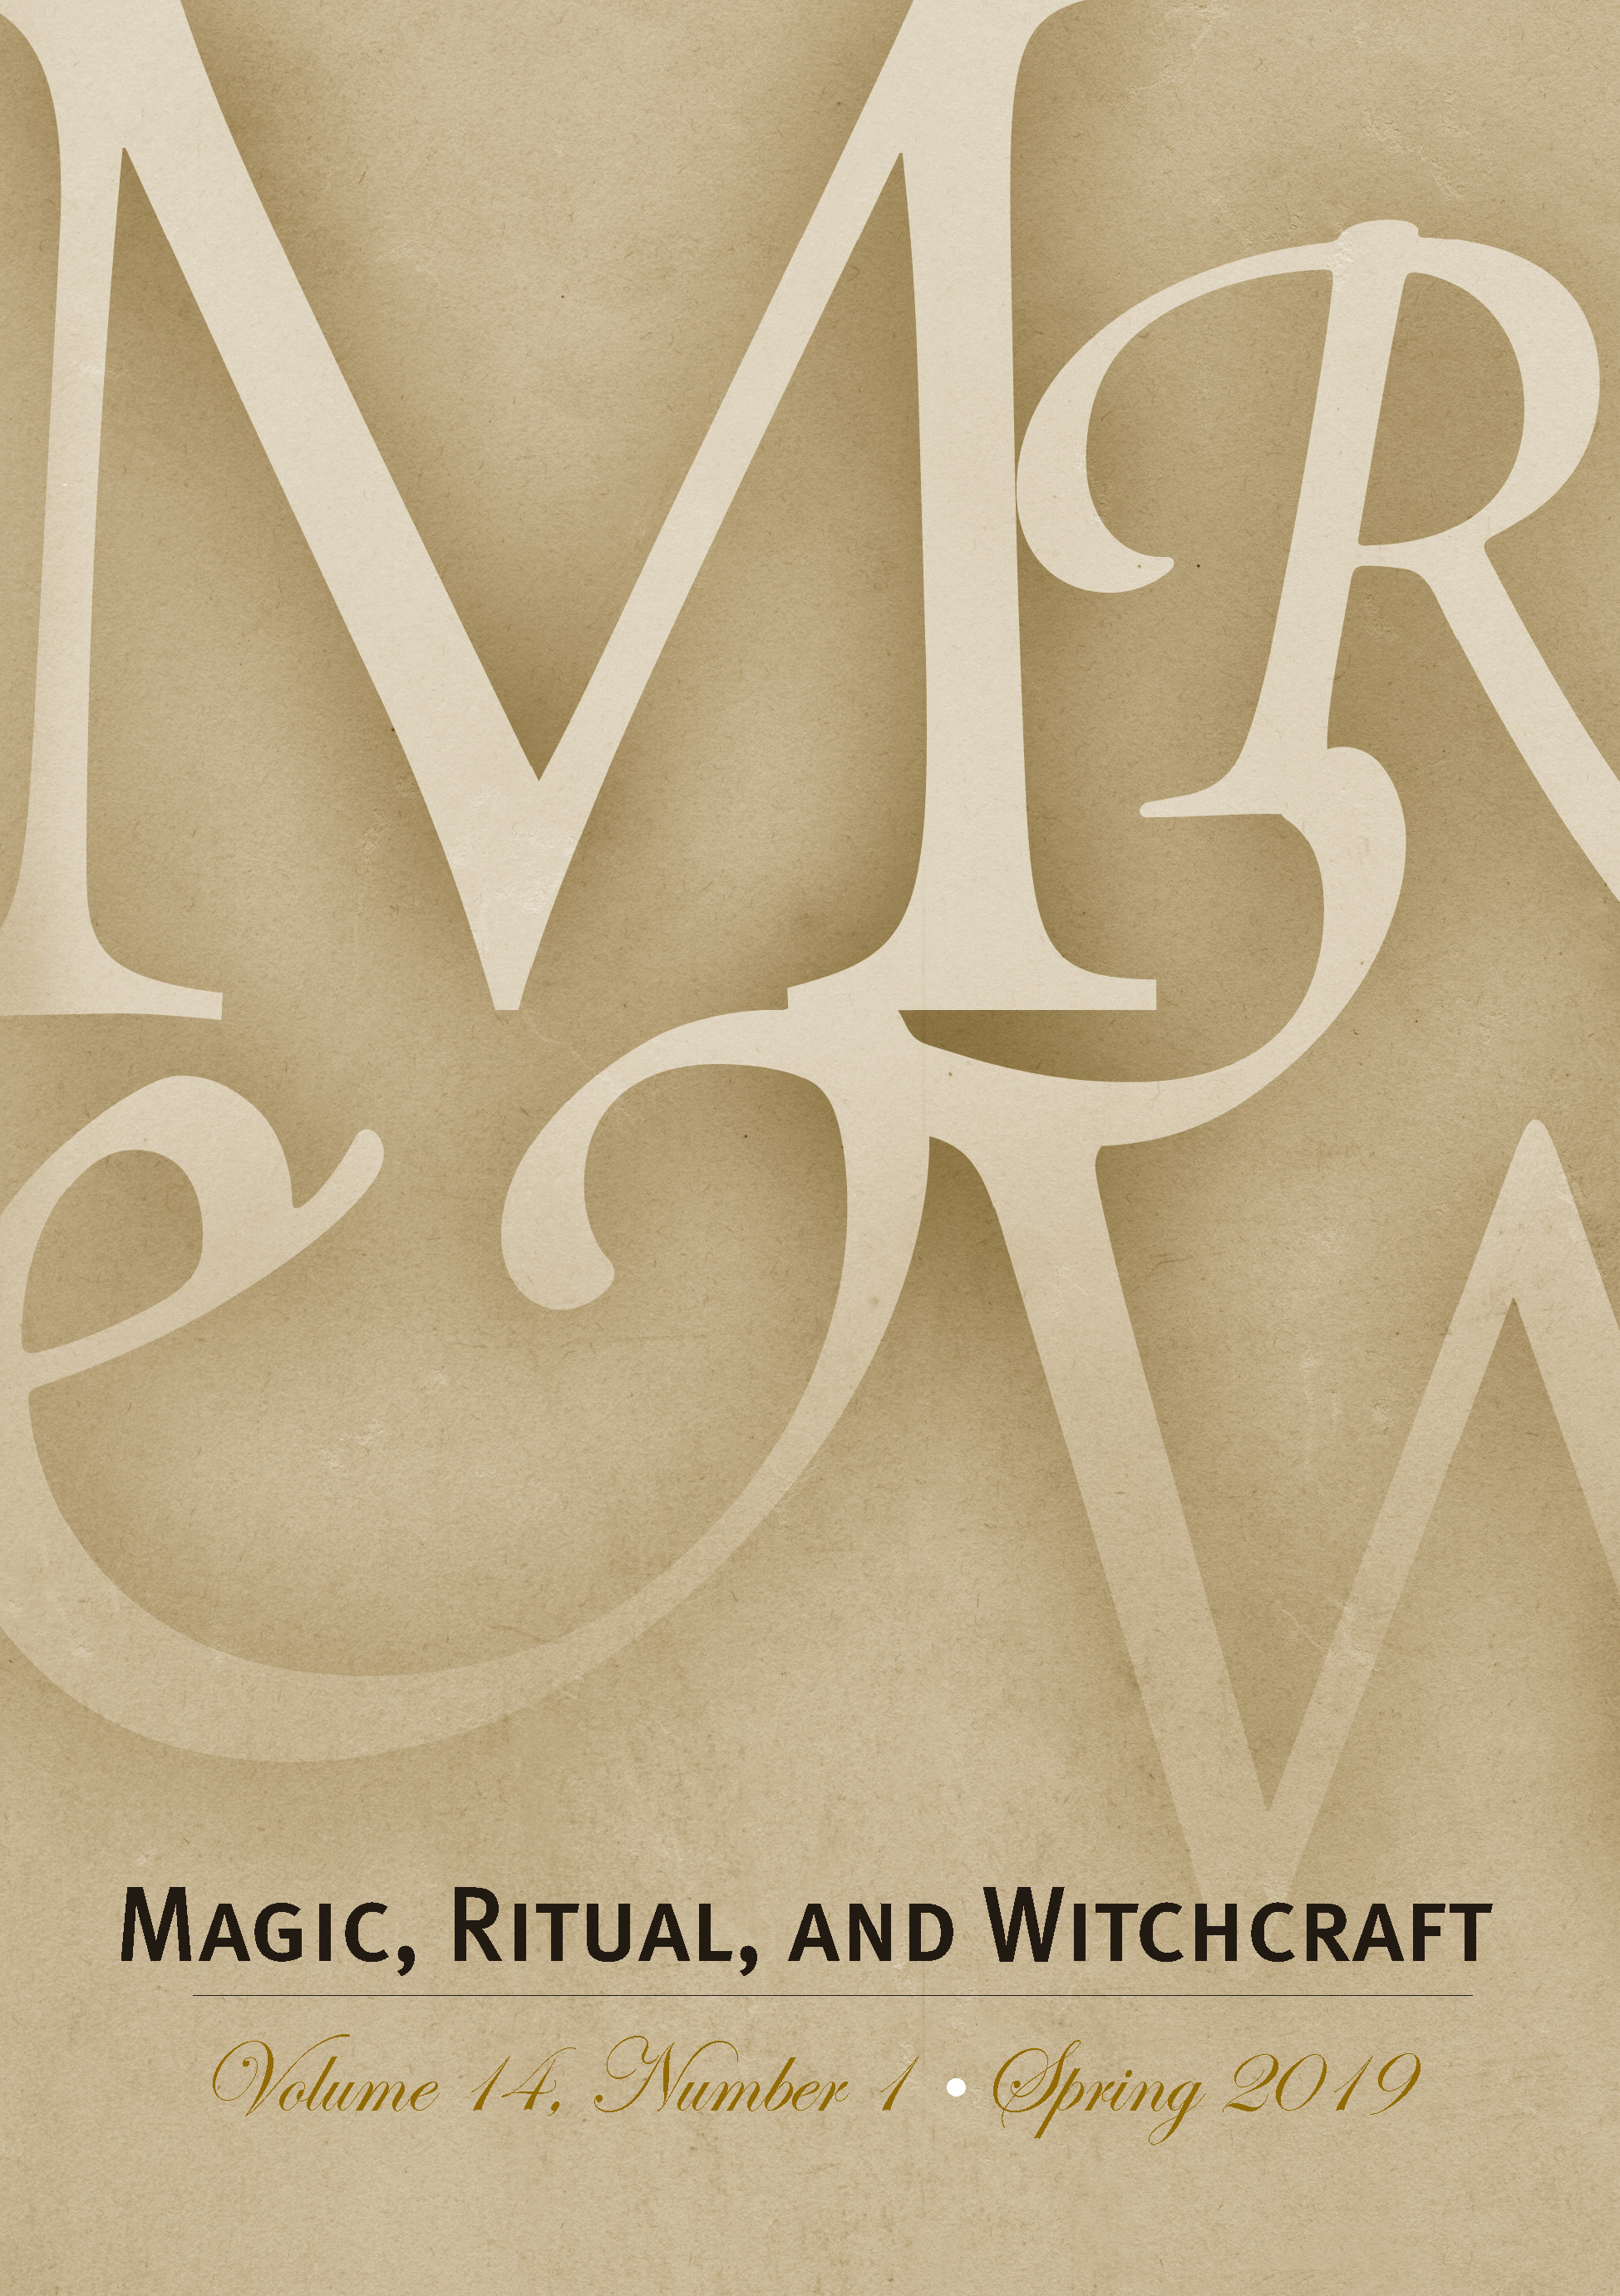 Magic, Ritual, and Witchcraft Spring 2020 Volume 15